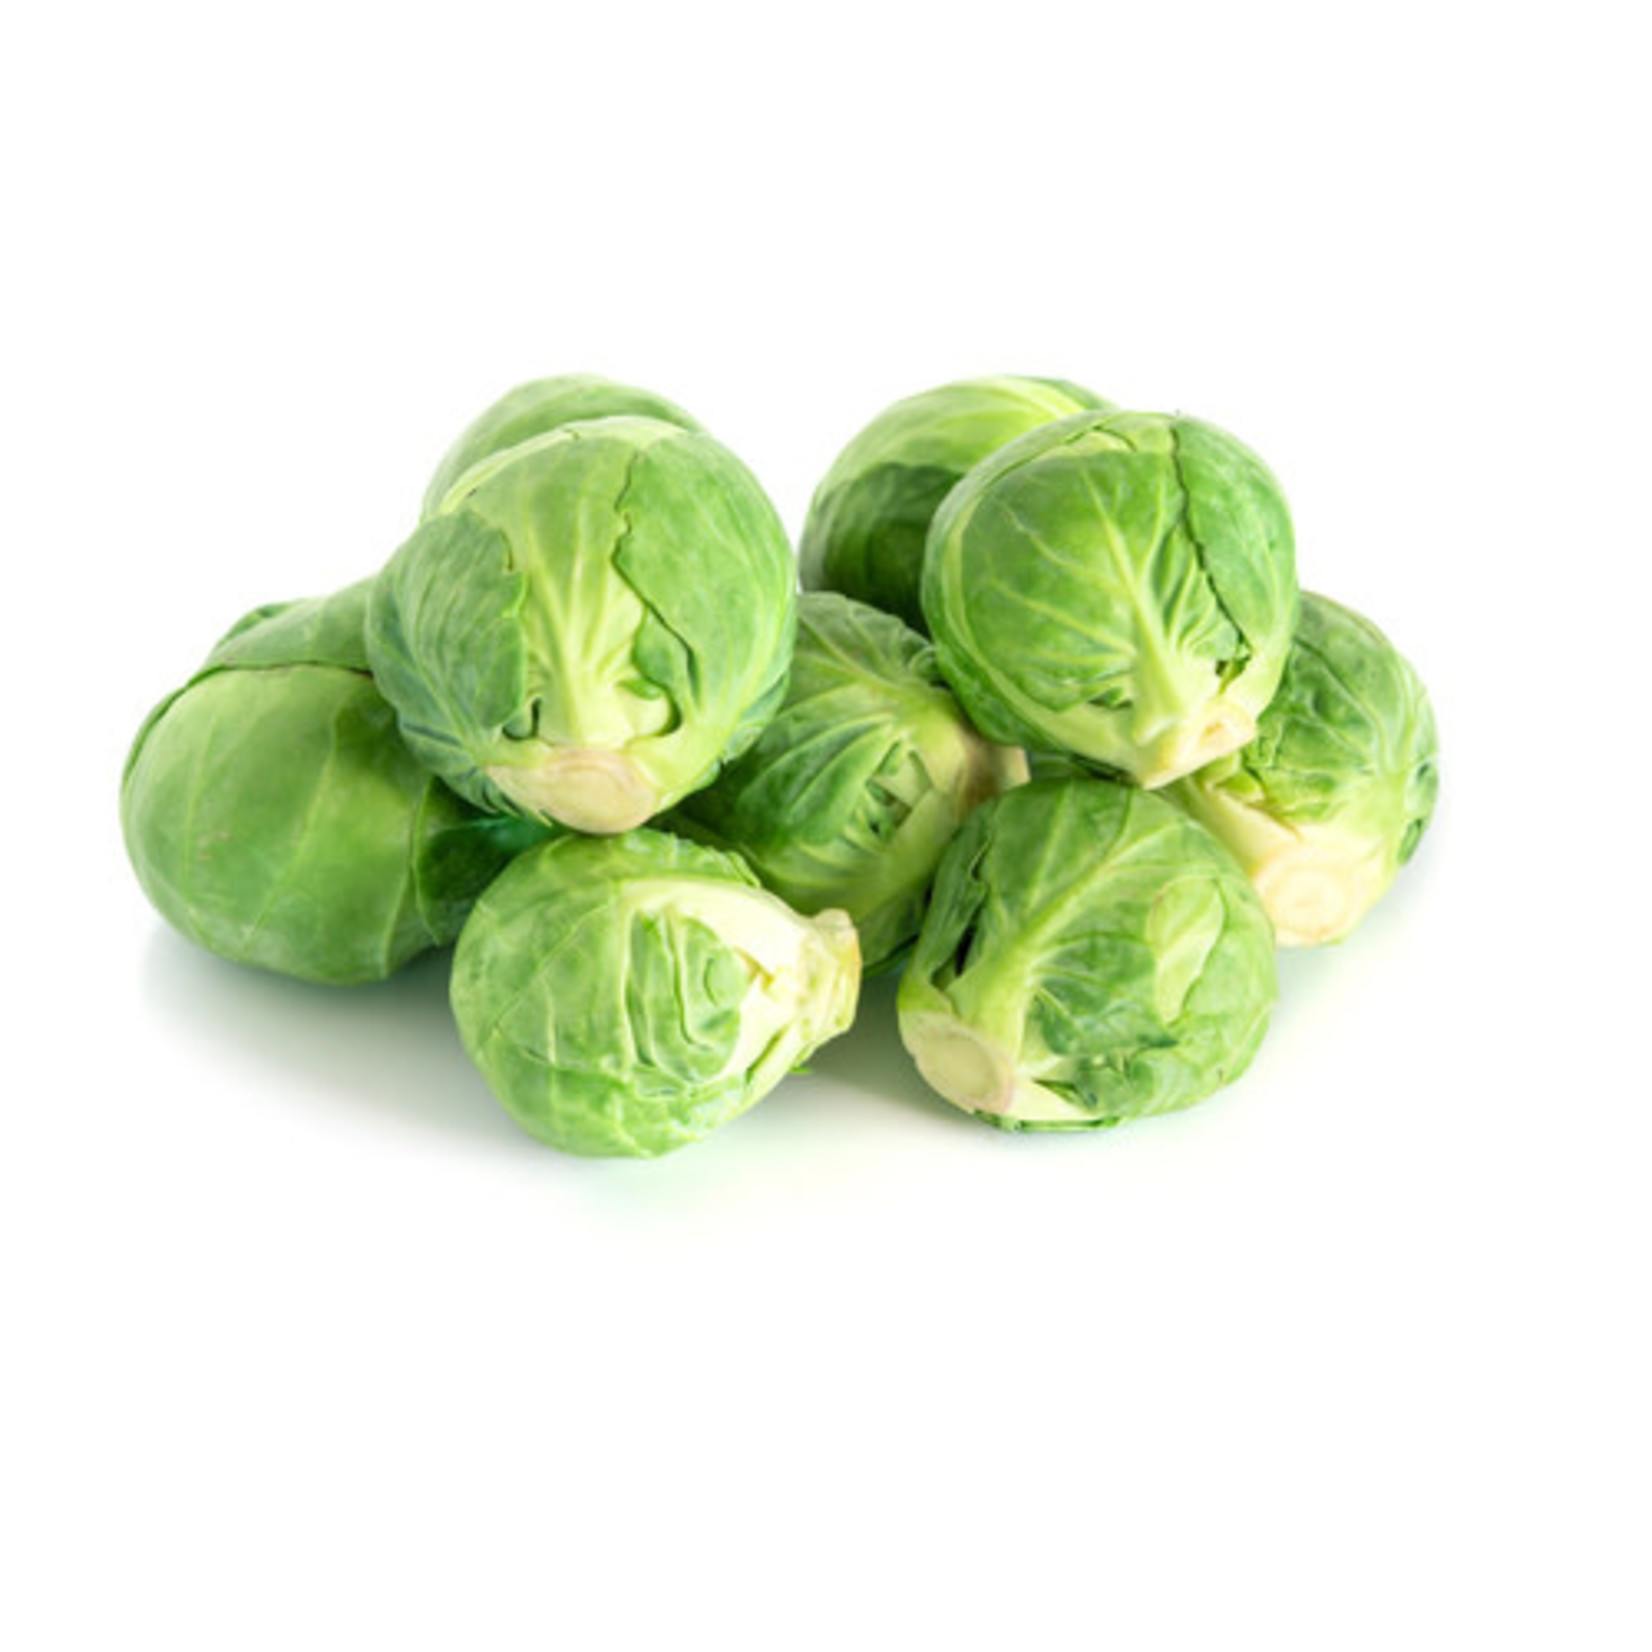 Brussel Sprouts (seed pkg) - Long Island Improved